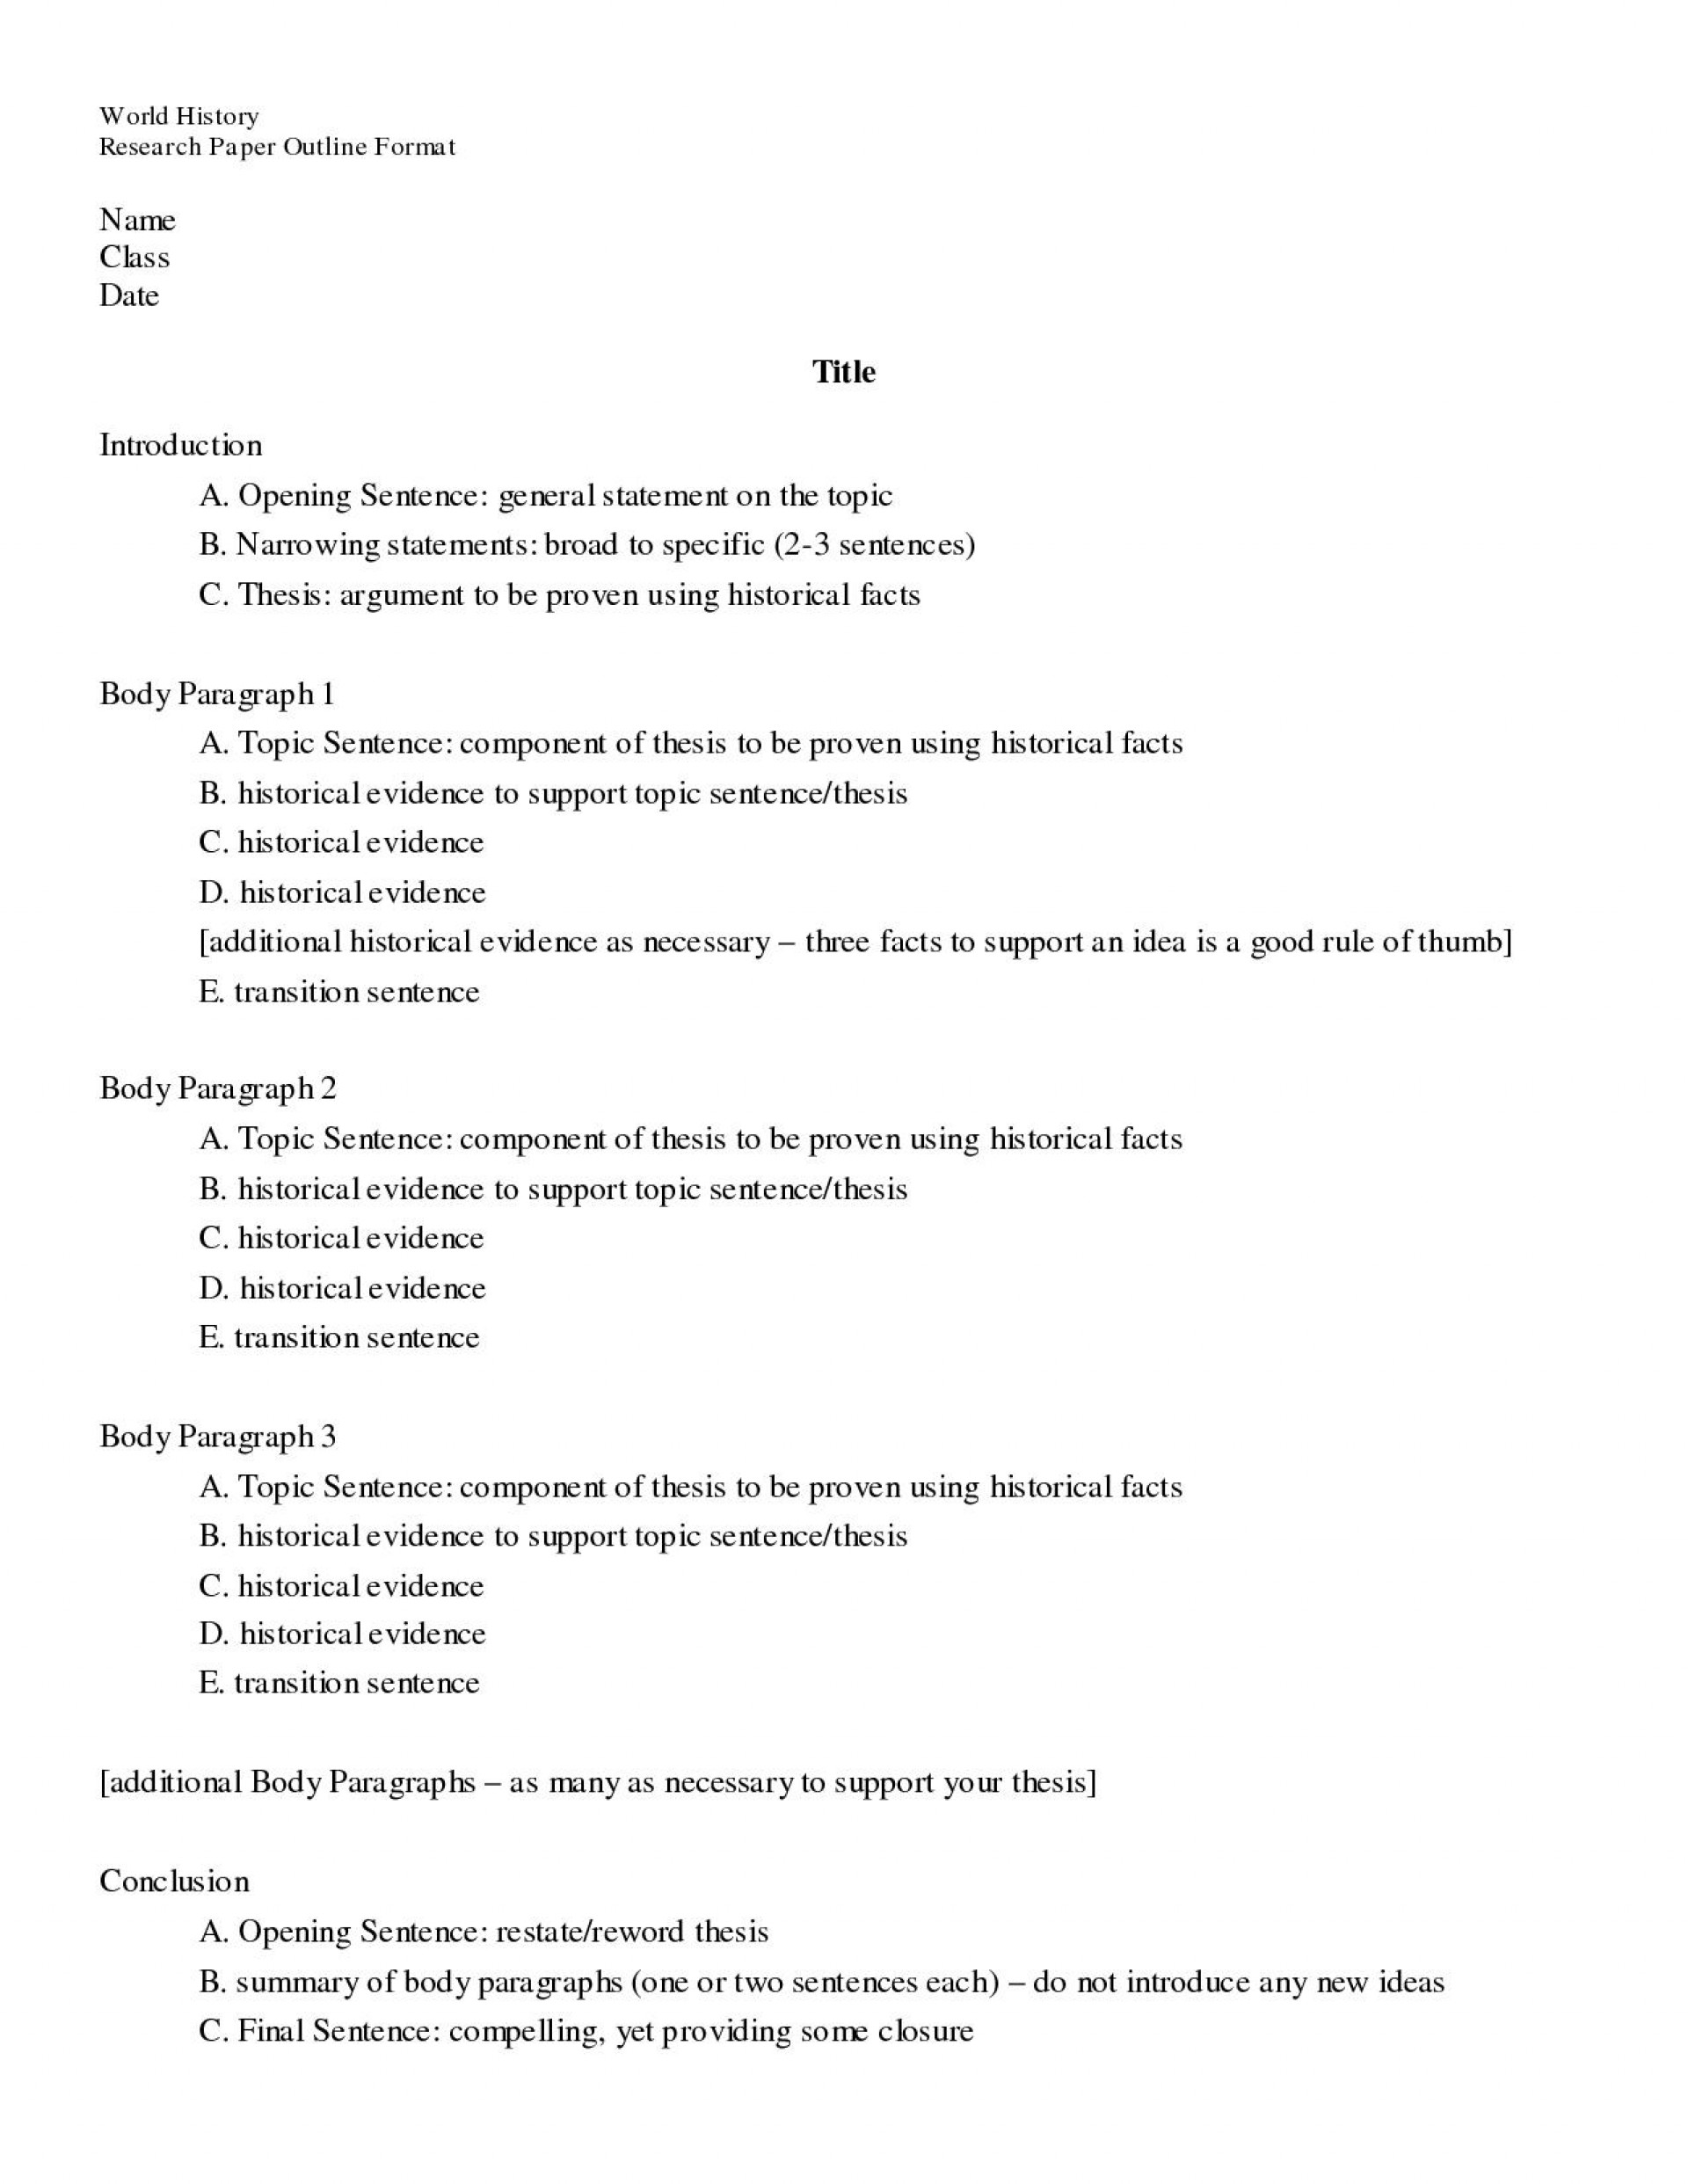 012 Outline Image1 Sample Outlines For Researchs Awful Research Papers Writing Example Examples Of Apa Paper 1920